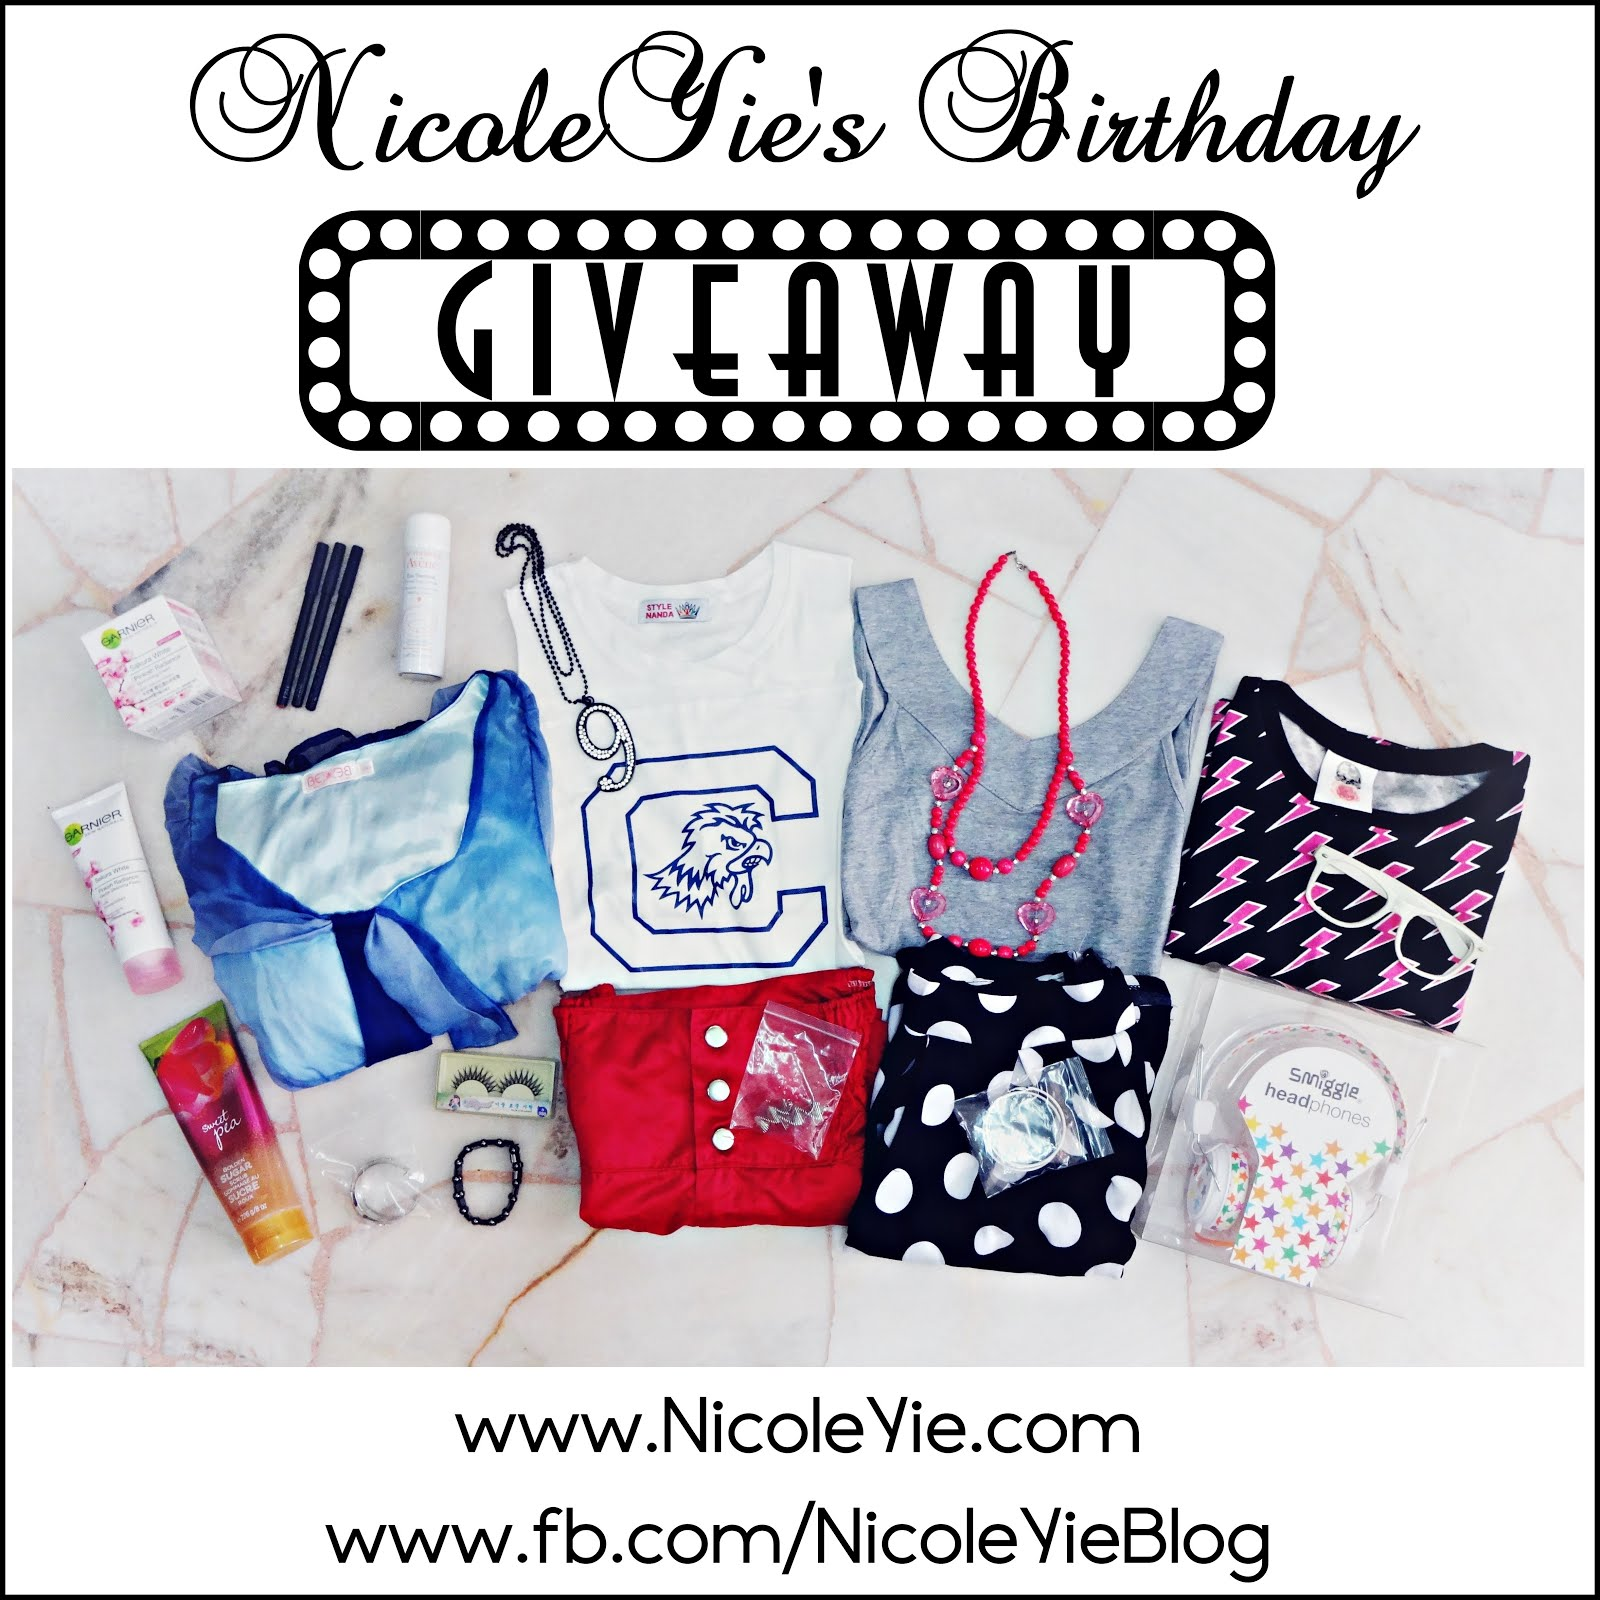 Ongoing Giveaway